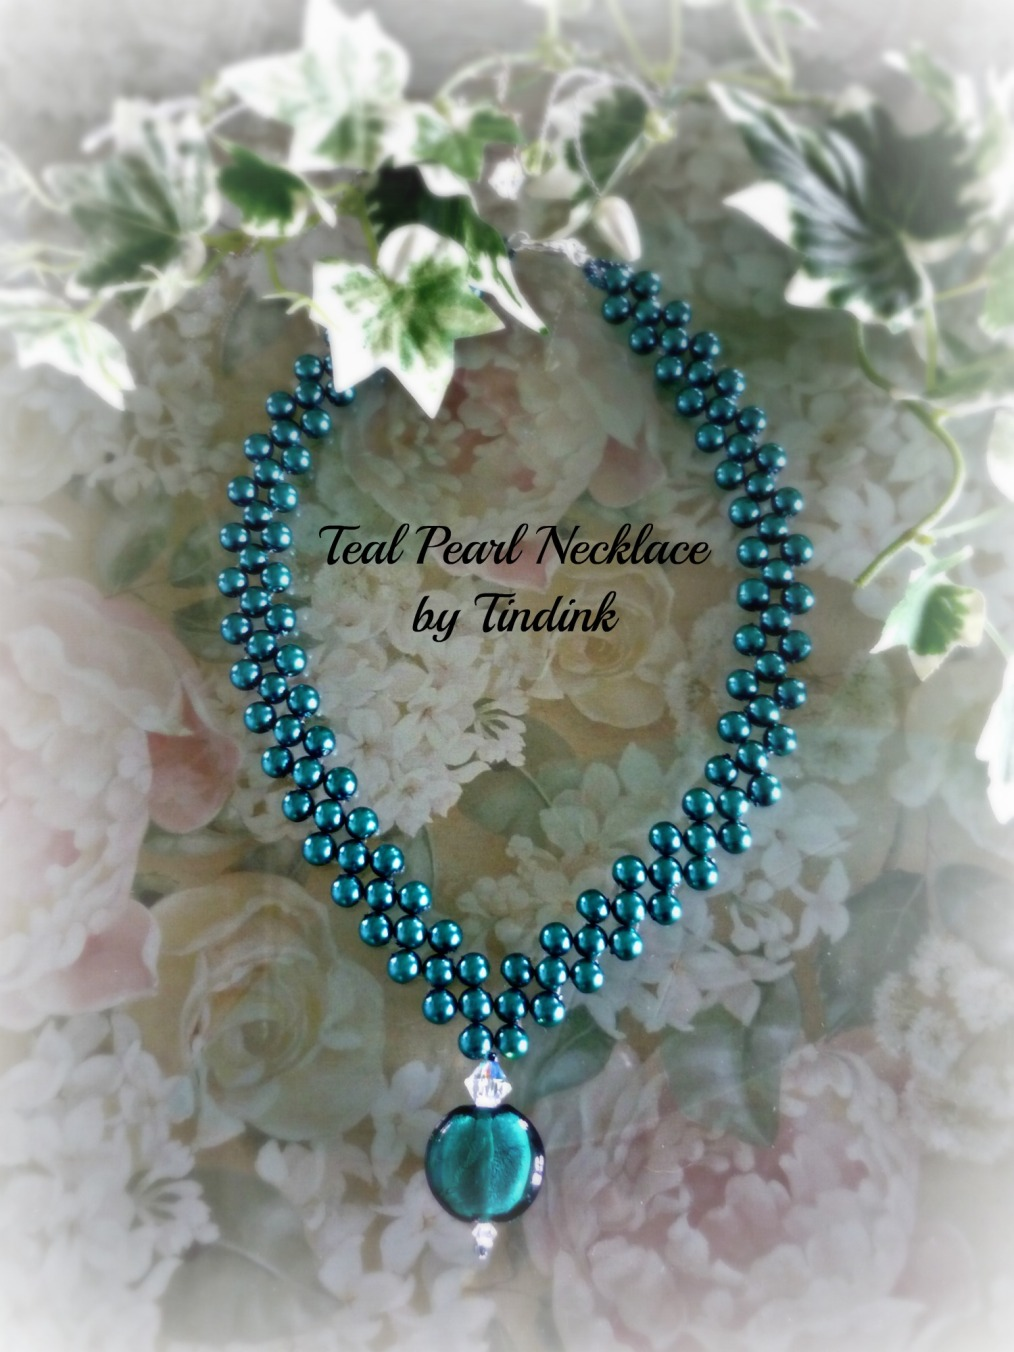 Teal Pearl Necklace